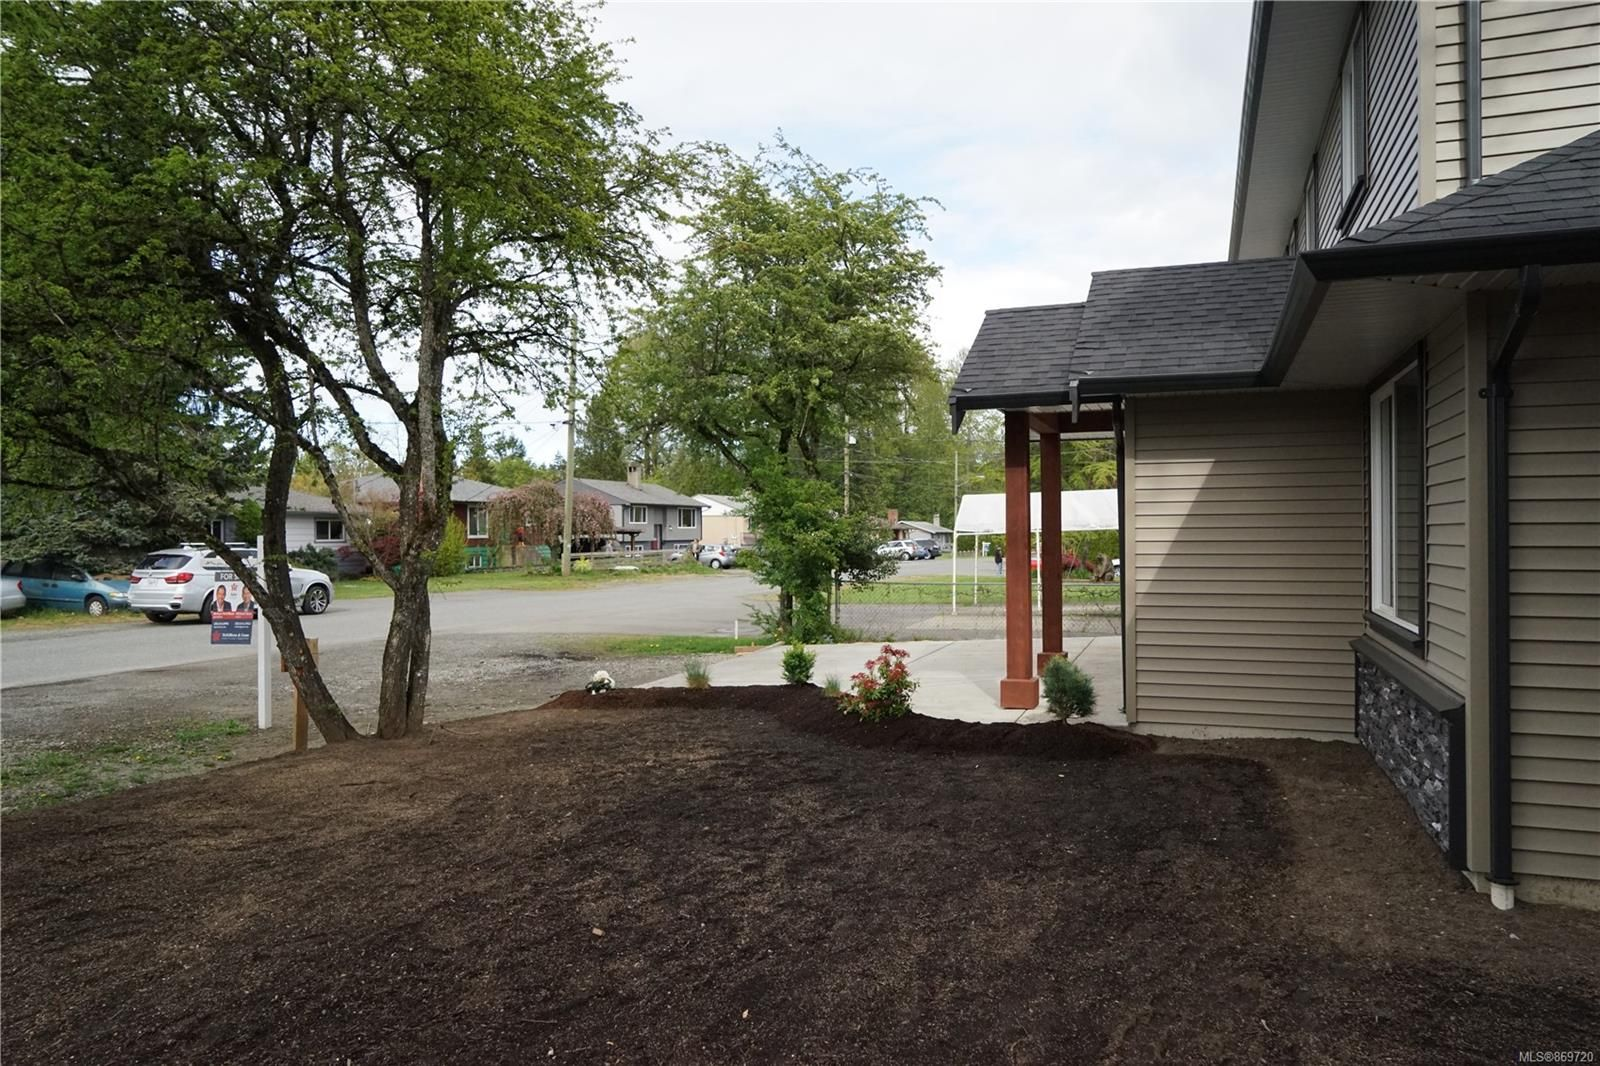 Photo 5: Photos: 770 Bruce Ave in : Na South Nanaimo House for sale (Nanaimo)  : MLS®# 869720